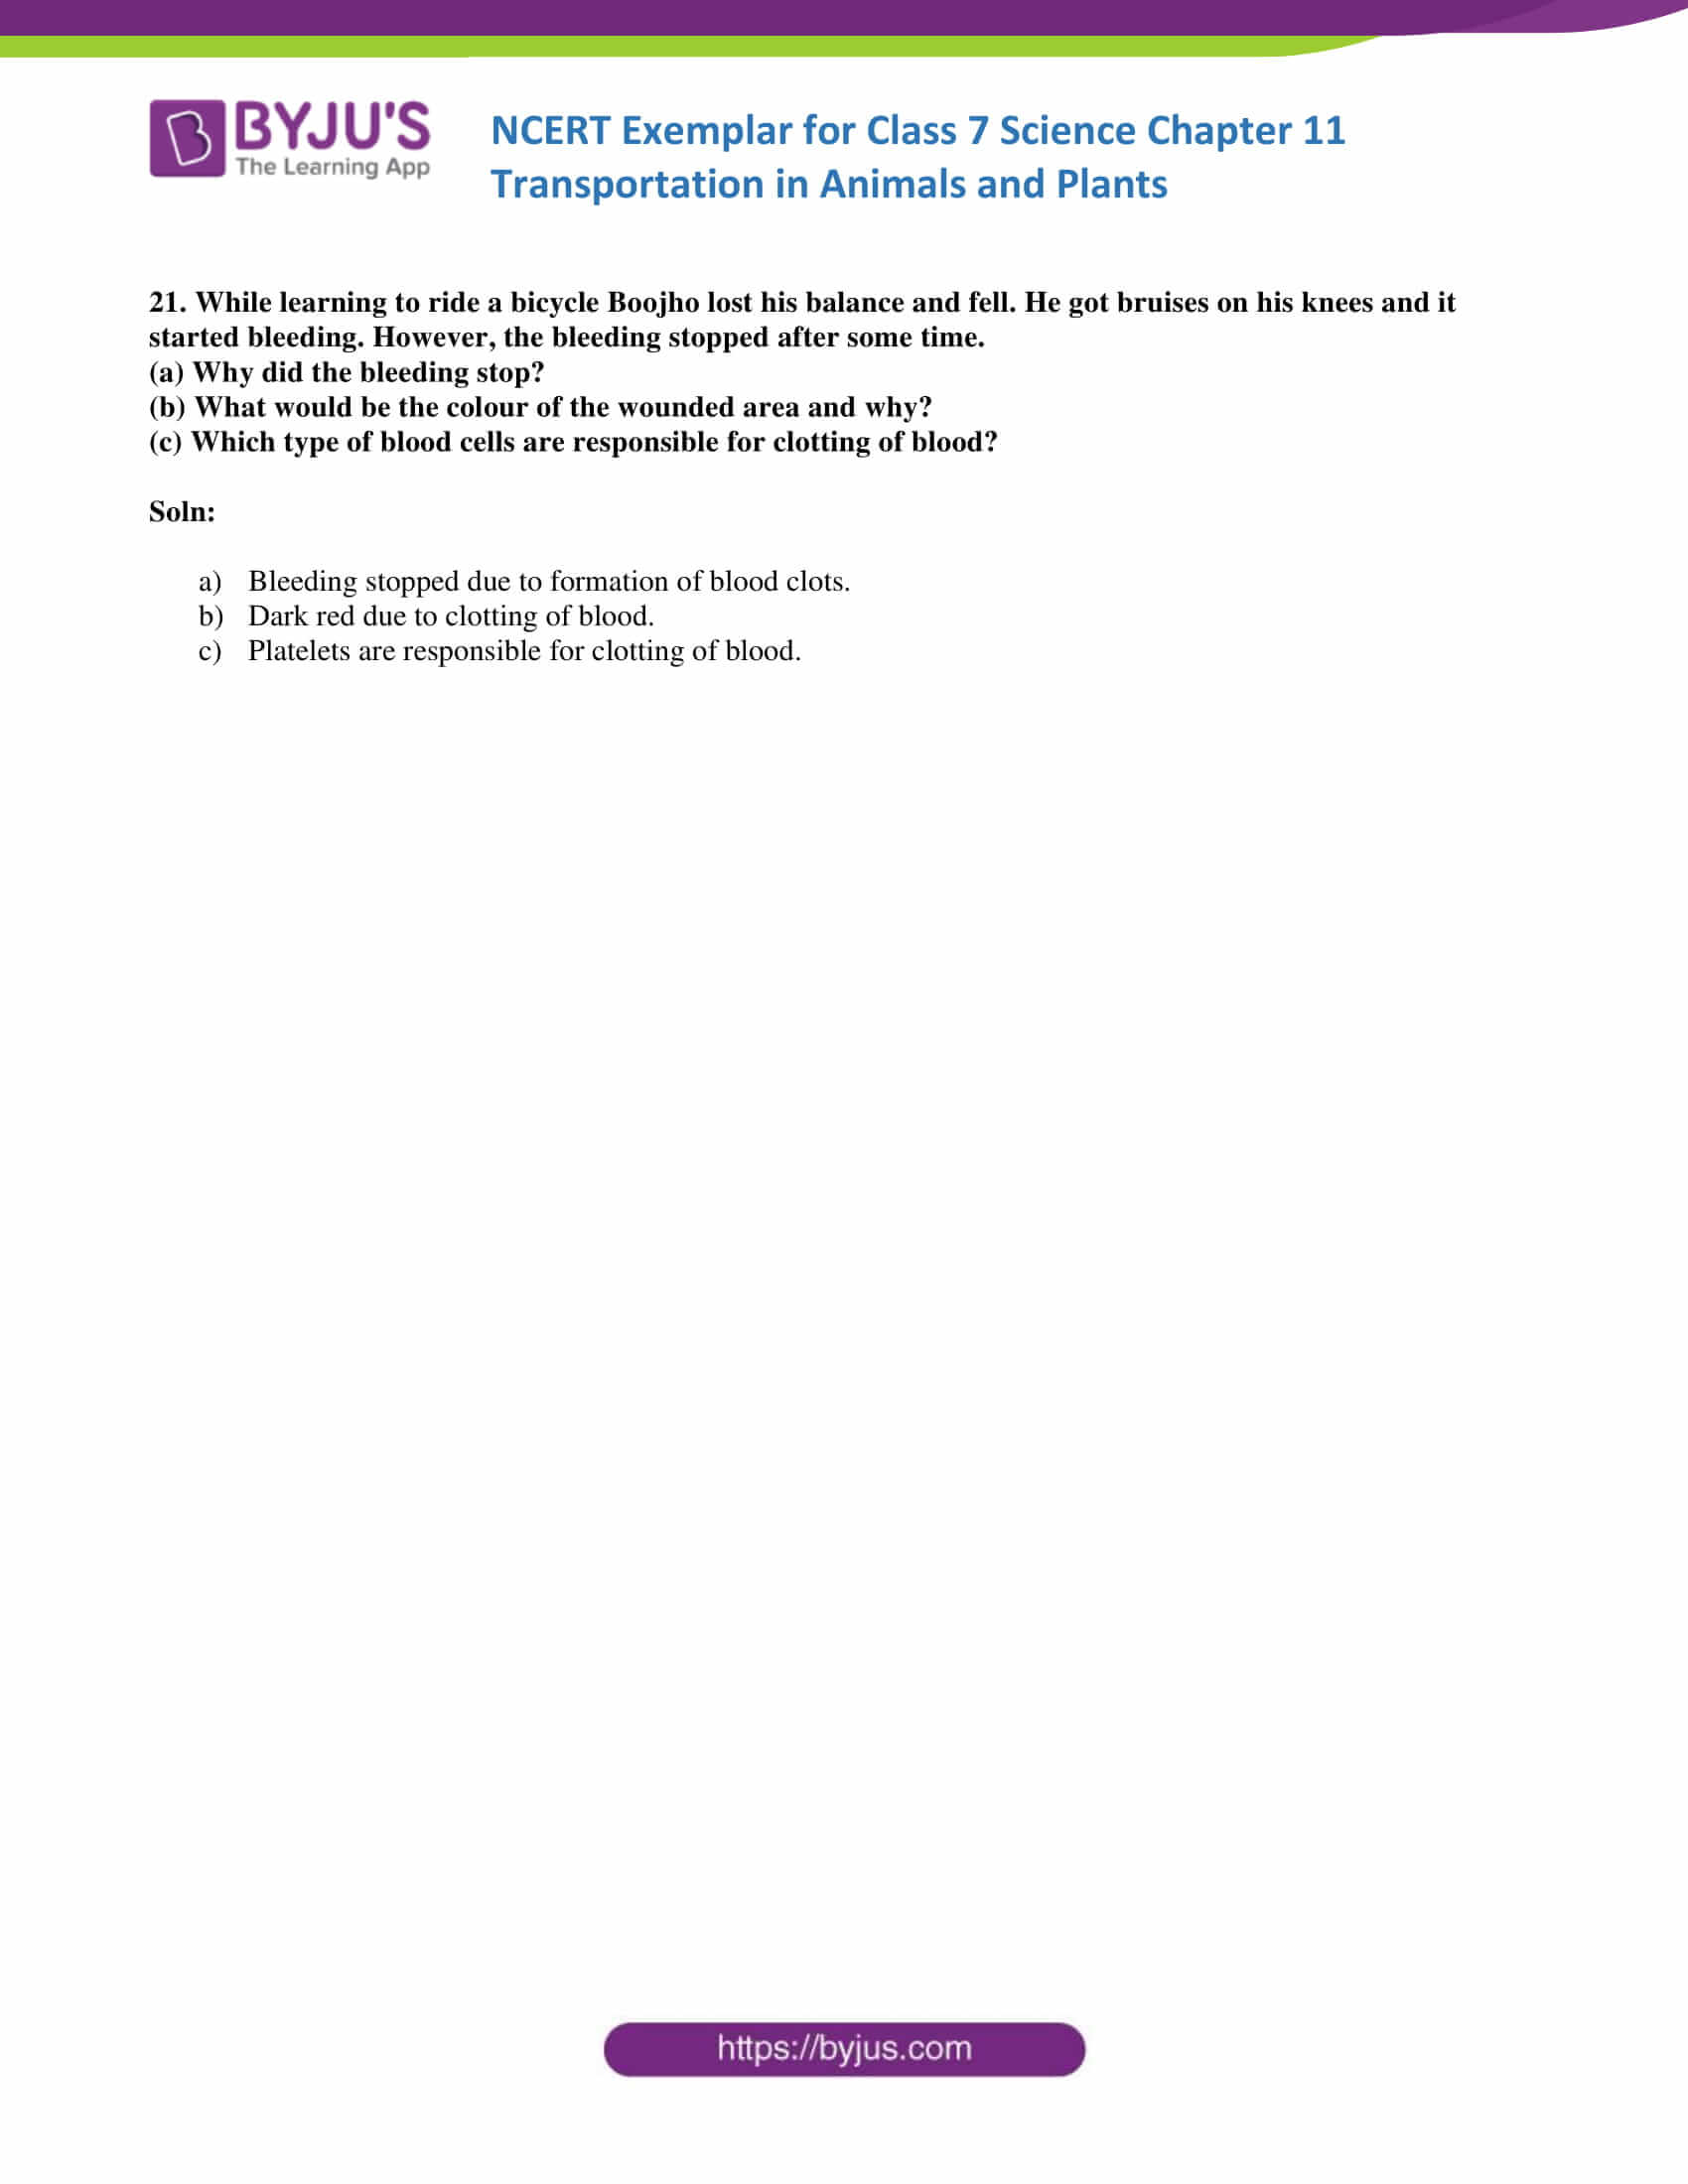 NCERT Exemplar solution class 7 science Chapter 11 8